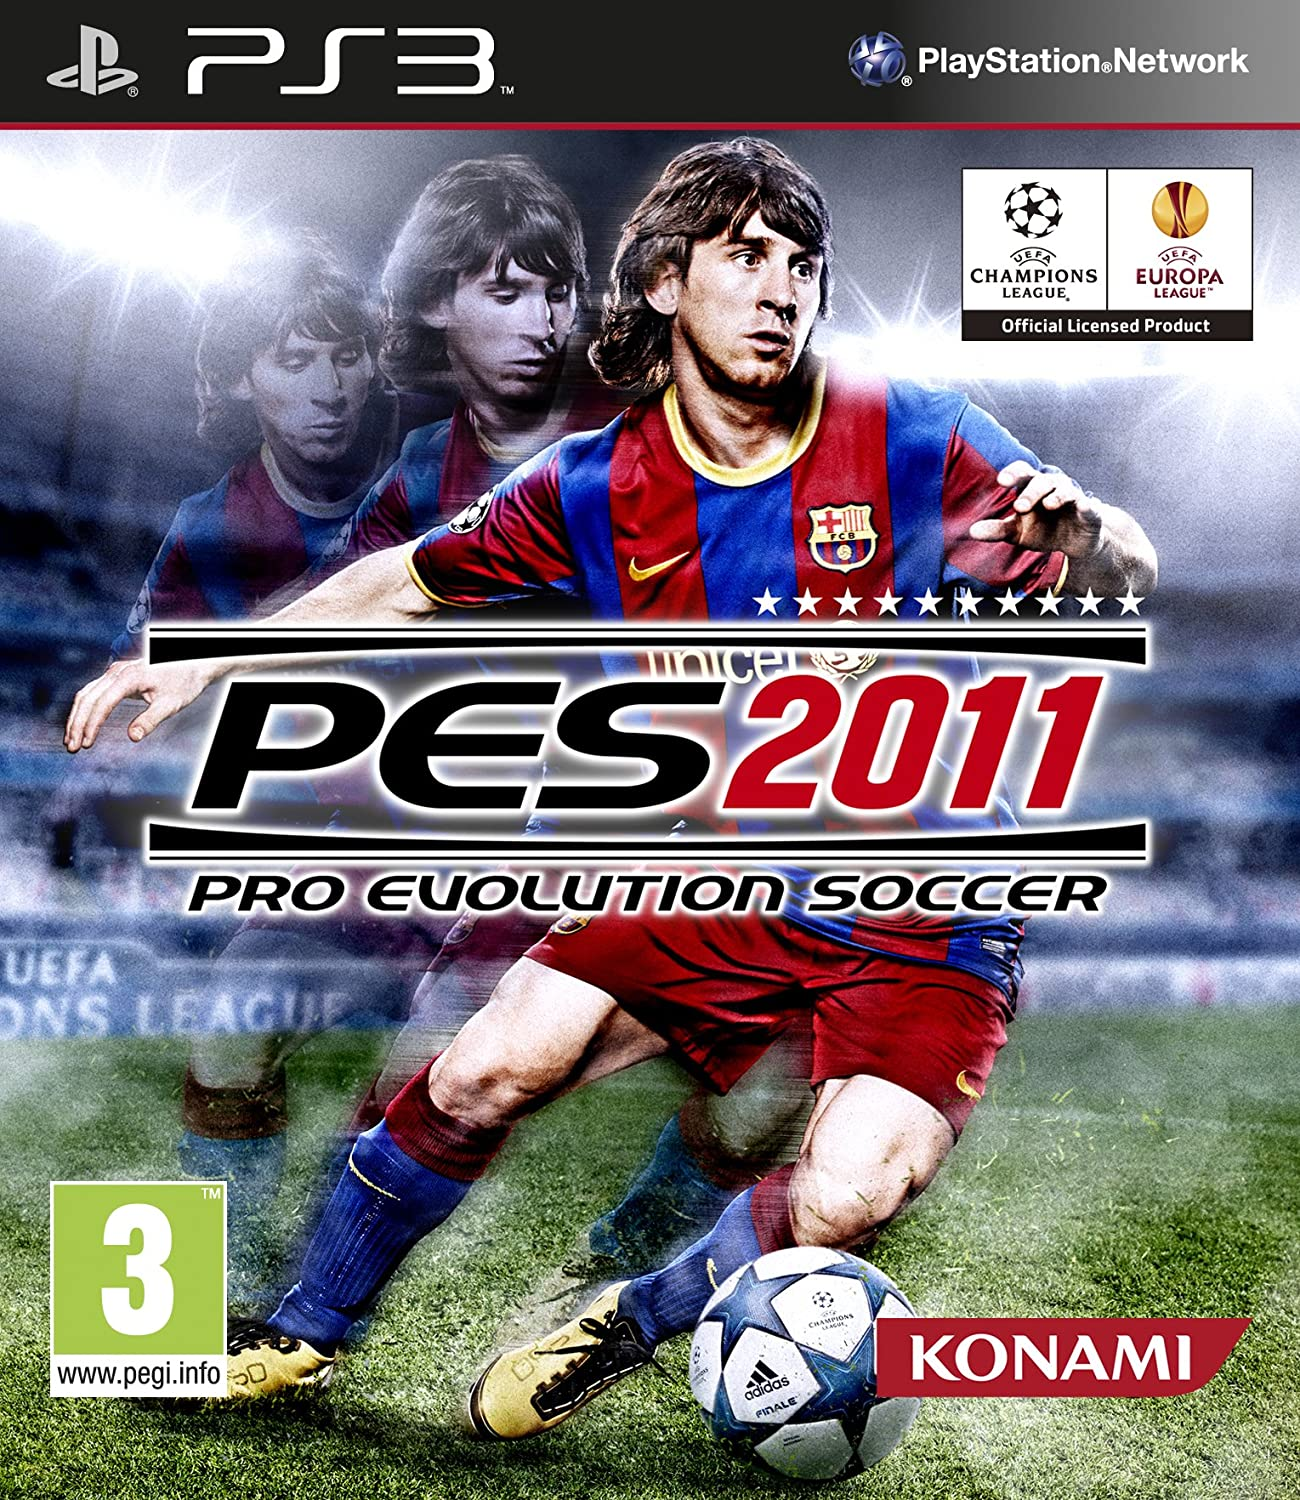 PES 2011 PS3 Gameplay with the Best Features You Must Try To Play